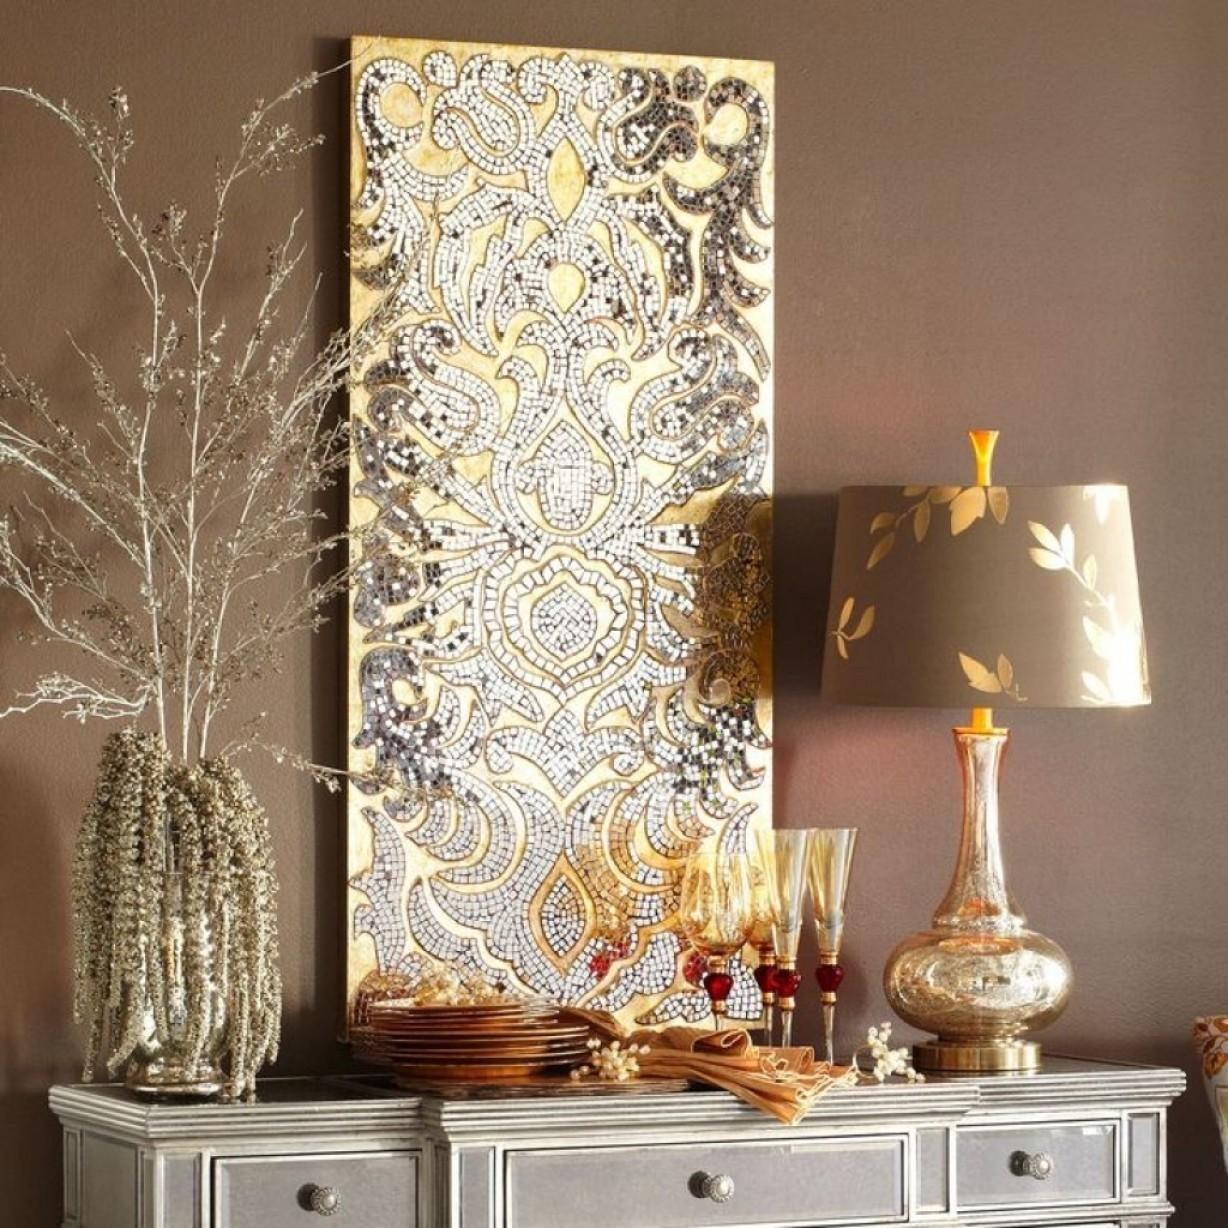 25 Wall Decoration Ideas For Your Home: 20 Photos Mirrors Decoration On The Wall